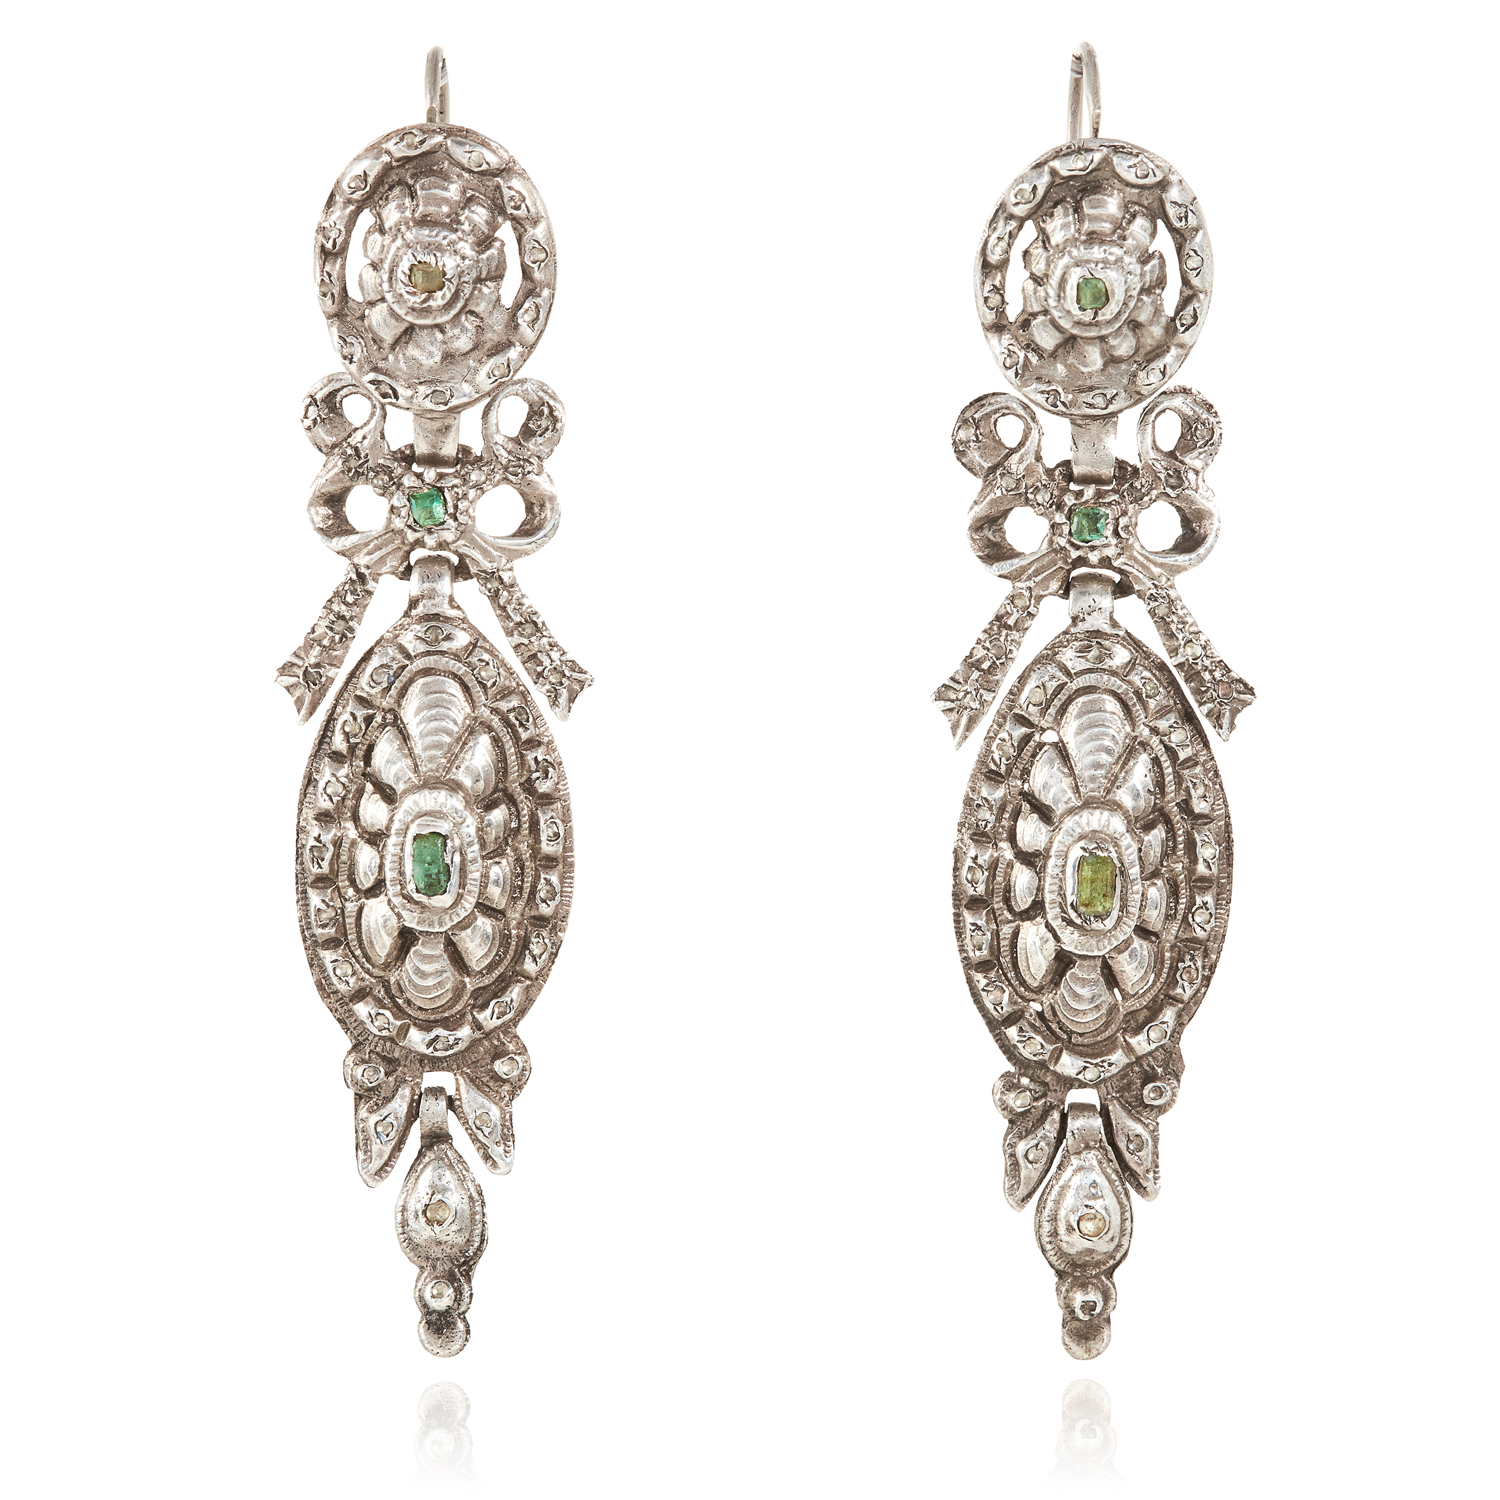 A PAIR OF SPANISH EMERALD AND DIAMOND EARRINGS, CATALAN 17TH/18TH CENTURY in silver, the articulated